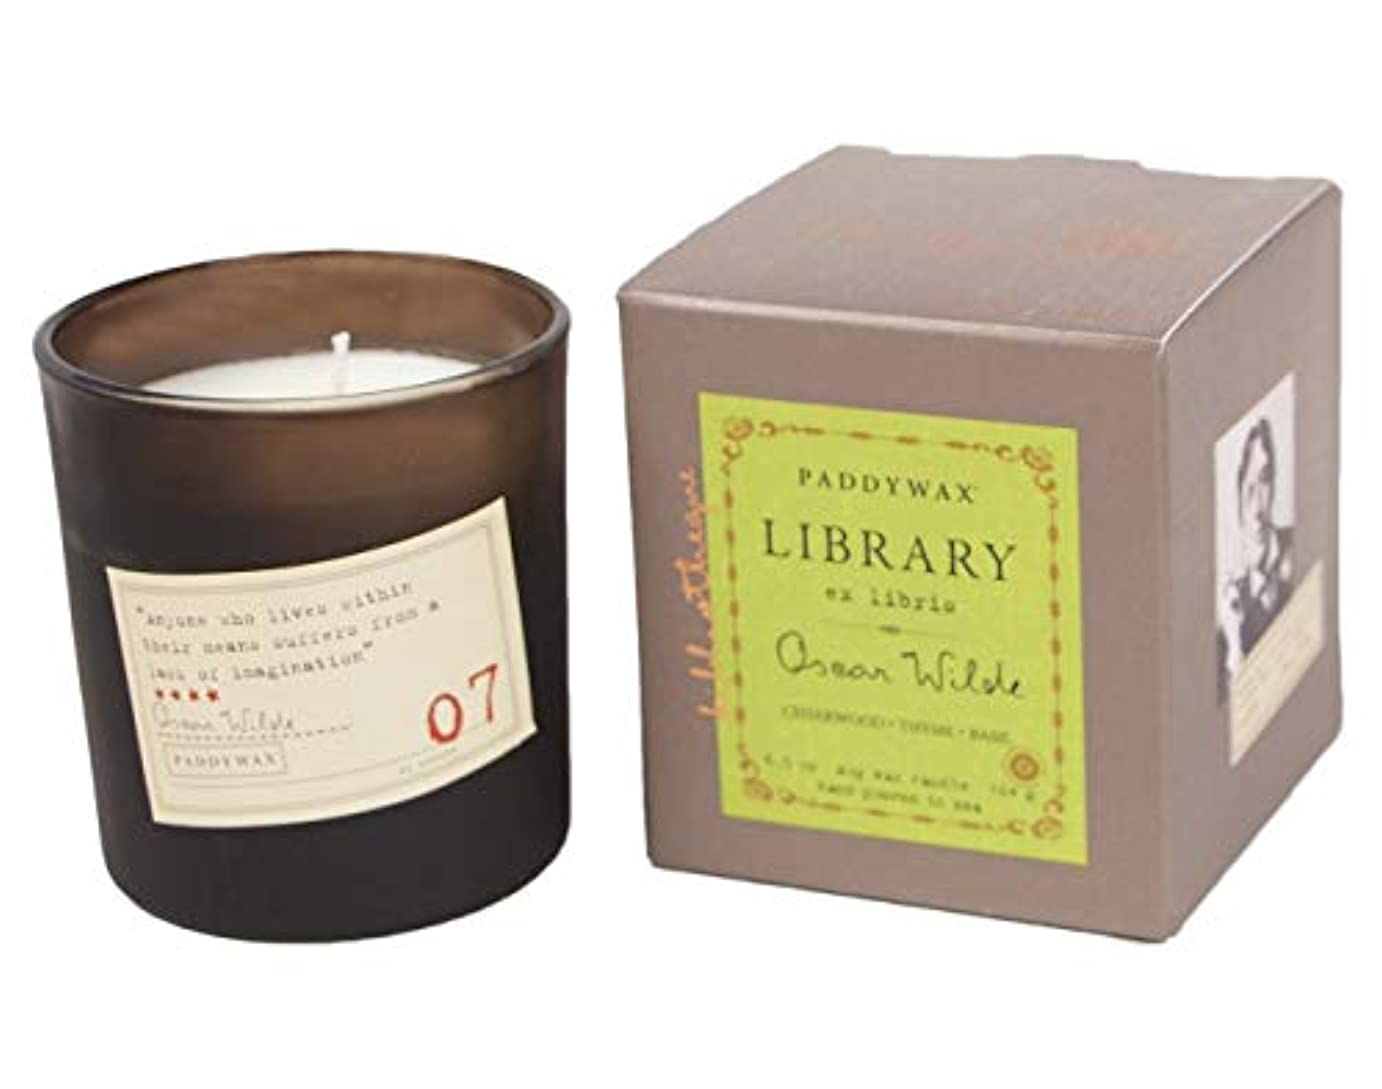 甘くする大通り異常なPaddywax Library Collection Oscar Wilde 190ml Glass Candle, Cedarwood, Thyme, Basil